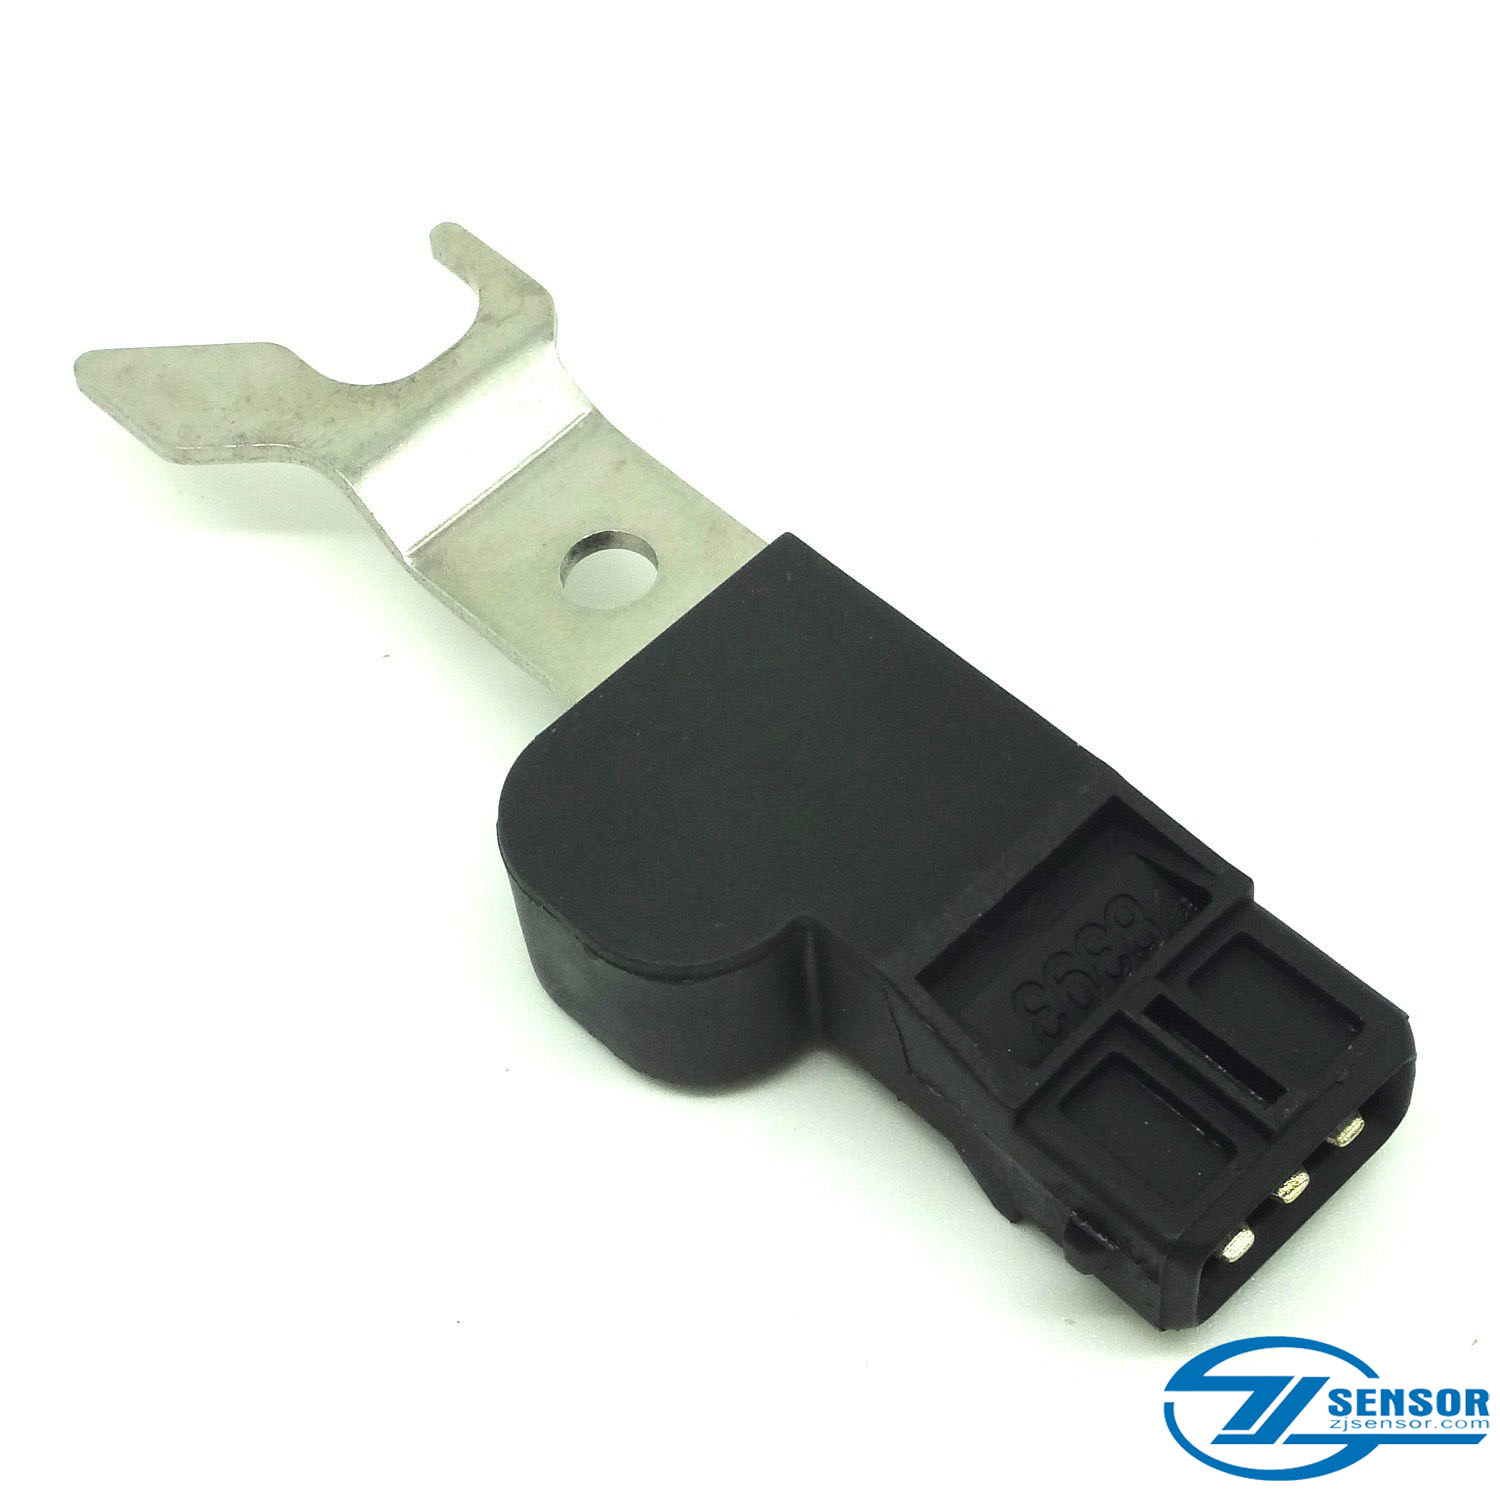 10456506/96418393/6238117/pc421/css1584/1238915/90458252 Auto Car Crankshaft Sensor For Opel/Buick